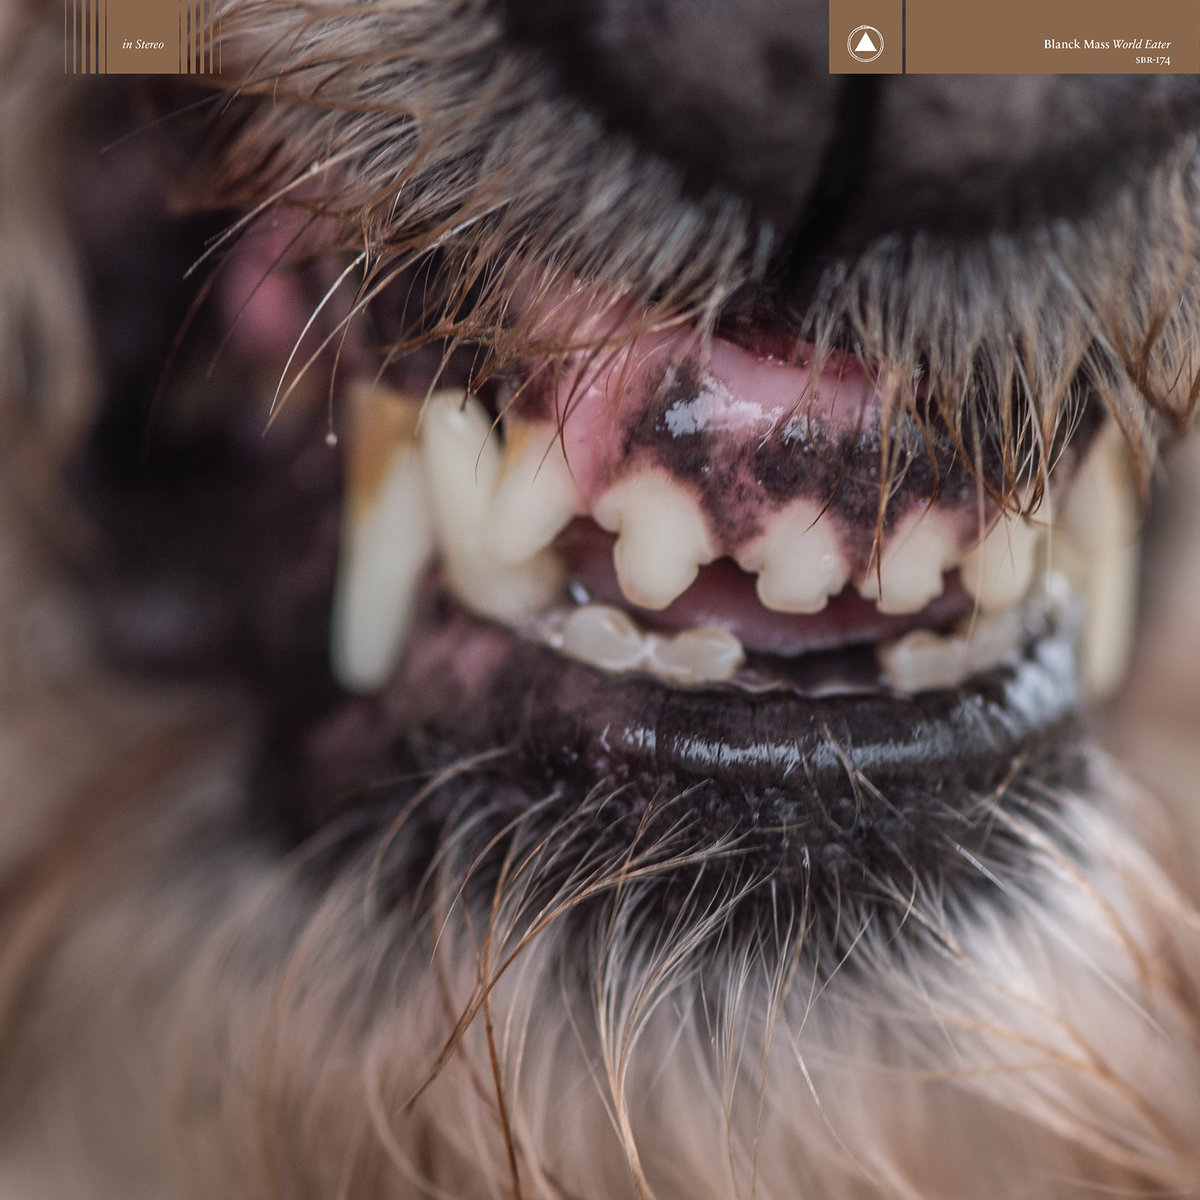 March 2017, Best Electronic Album: World Eater by BlanckMass